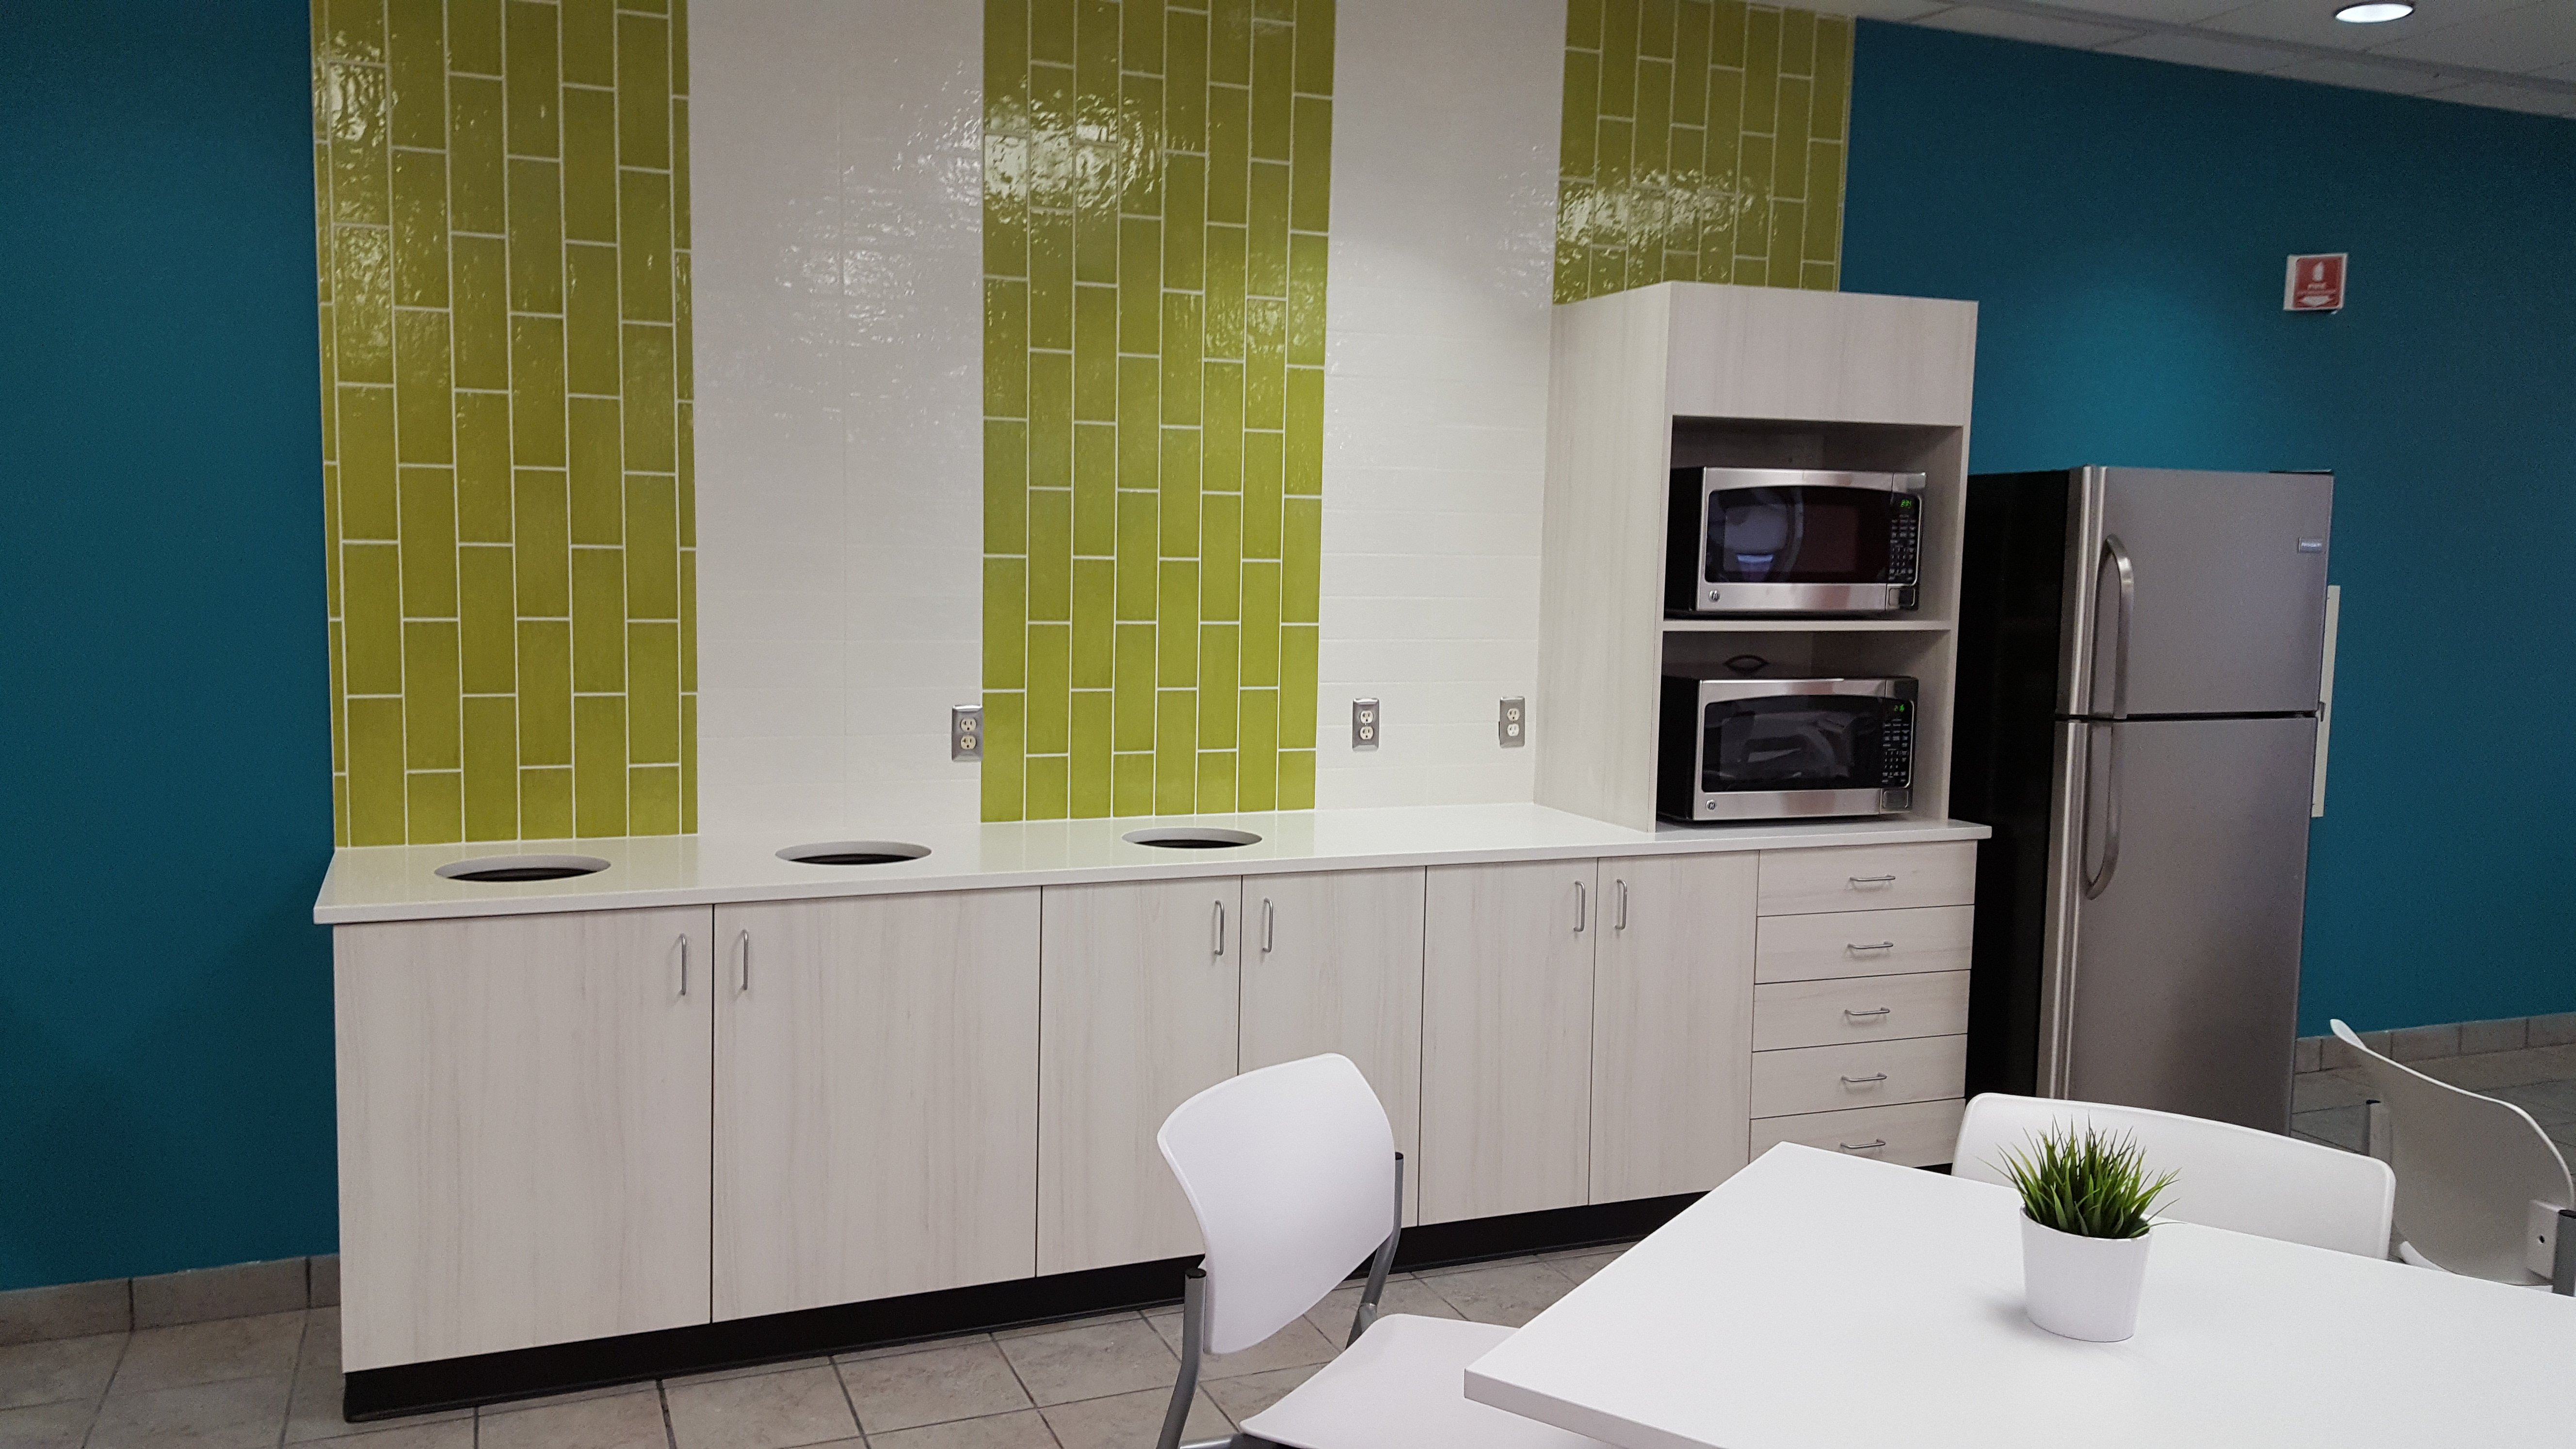 Top Grade Commercial Building Cabinetry